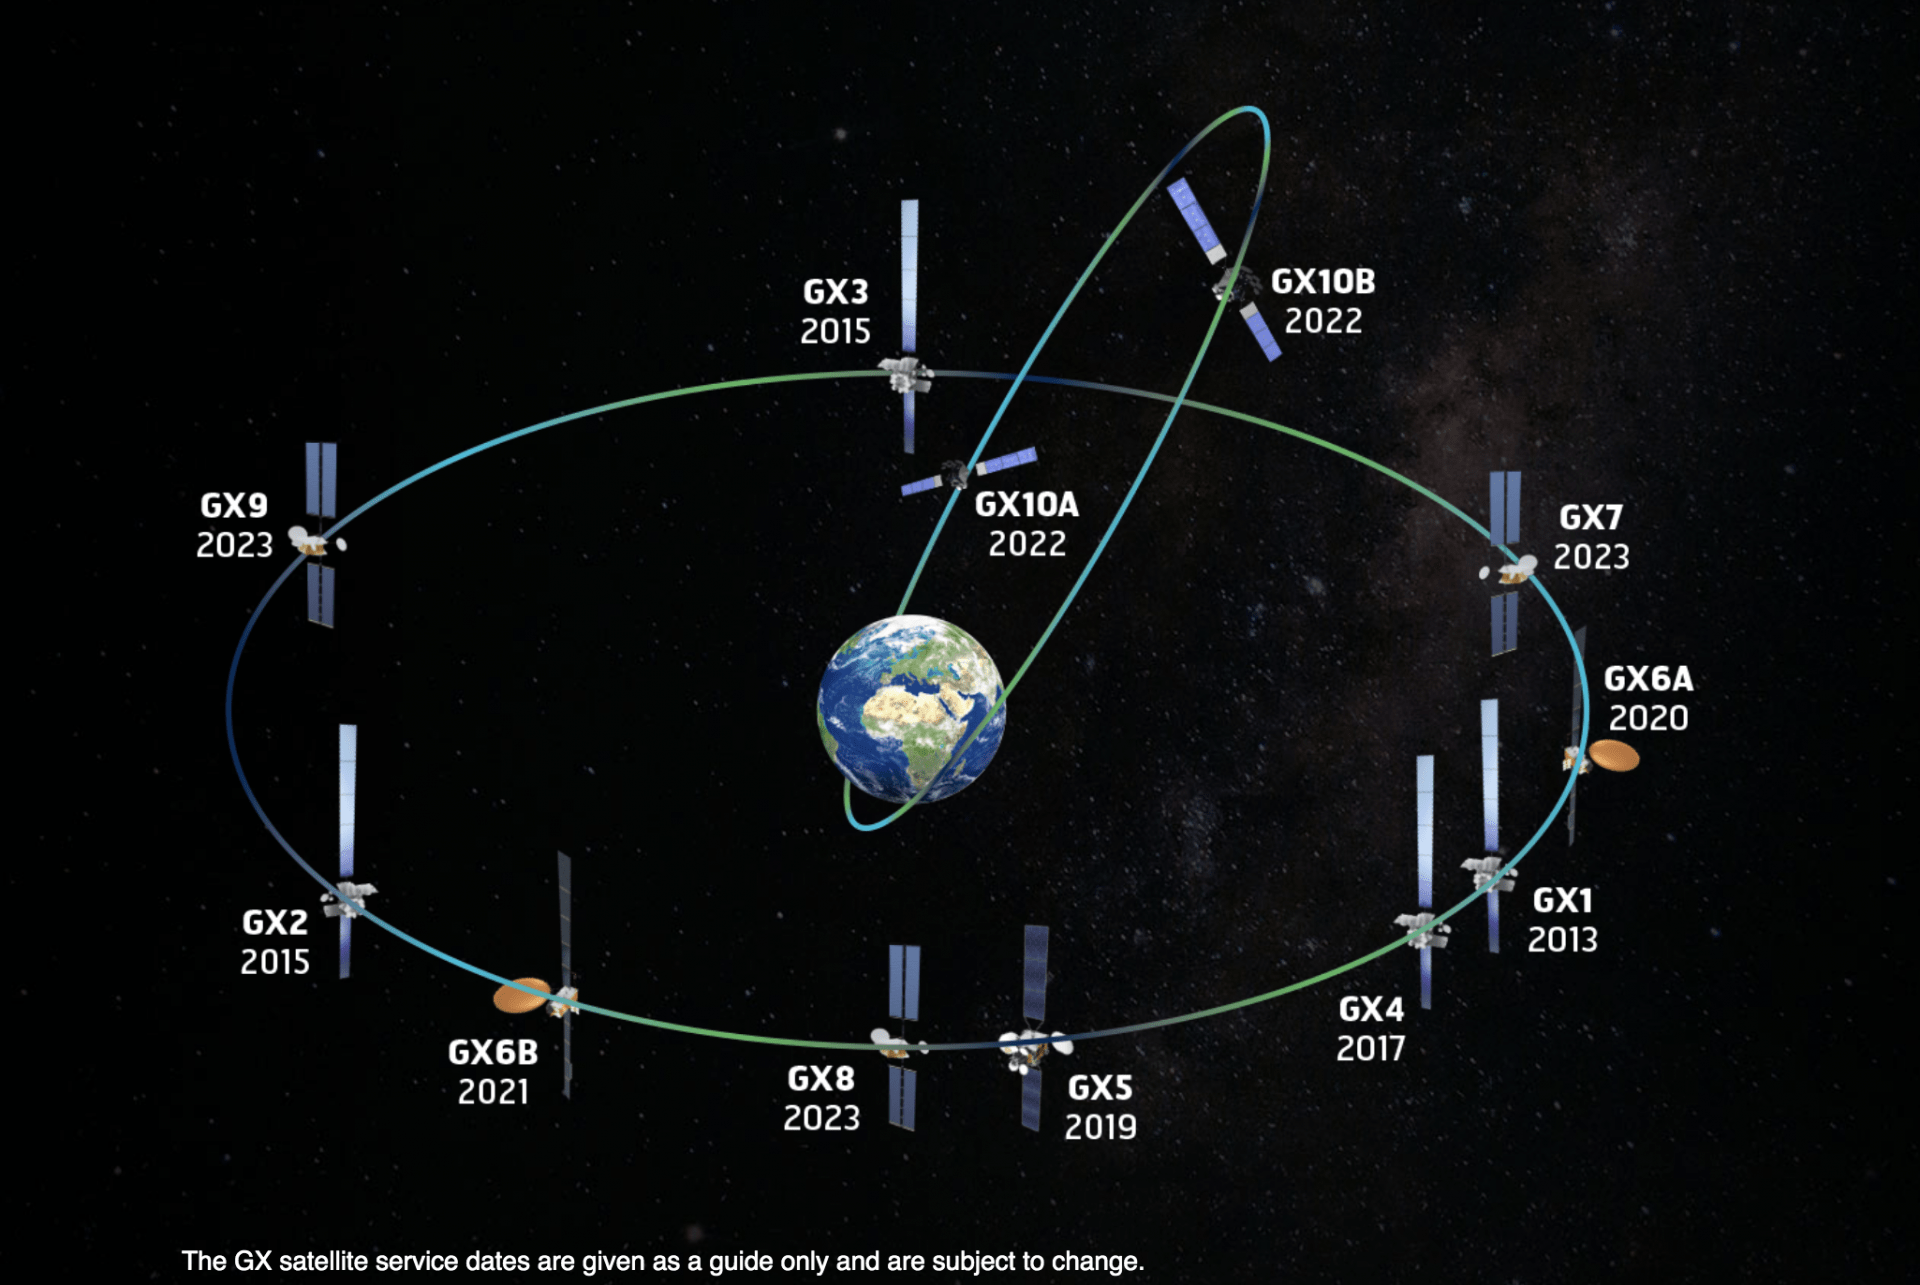 Global Xpress, Inmarsat, Geostationary Orbit, Earth